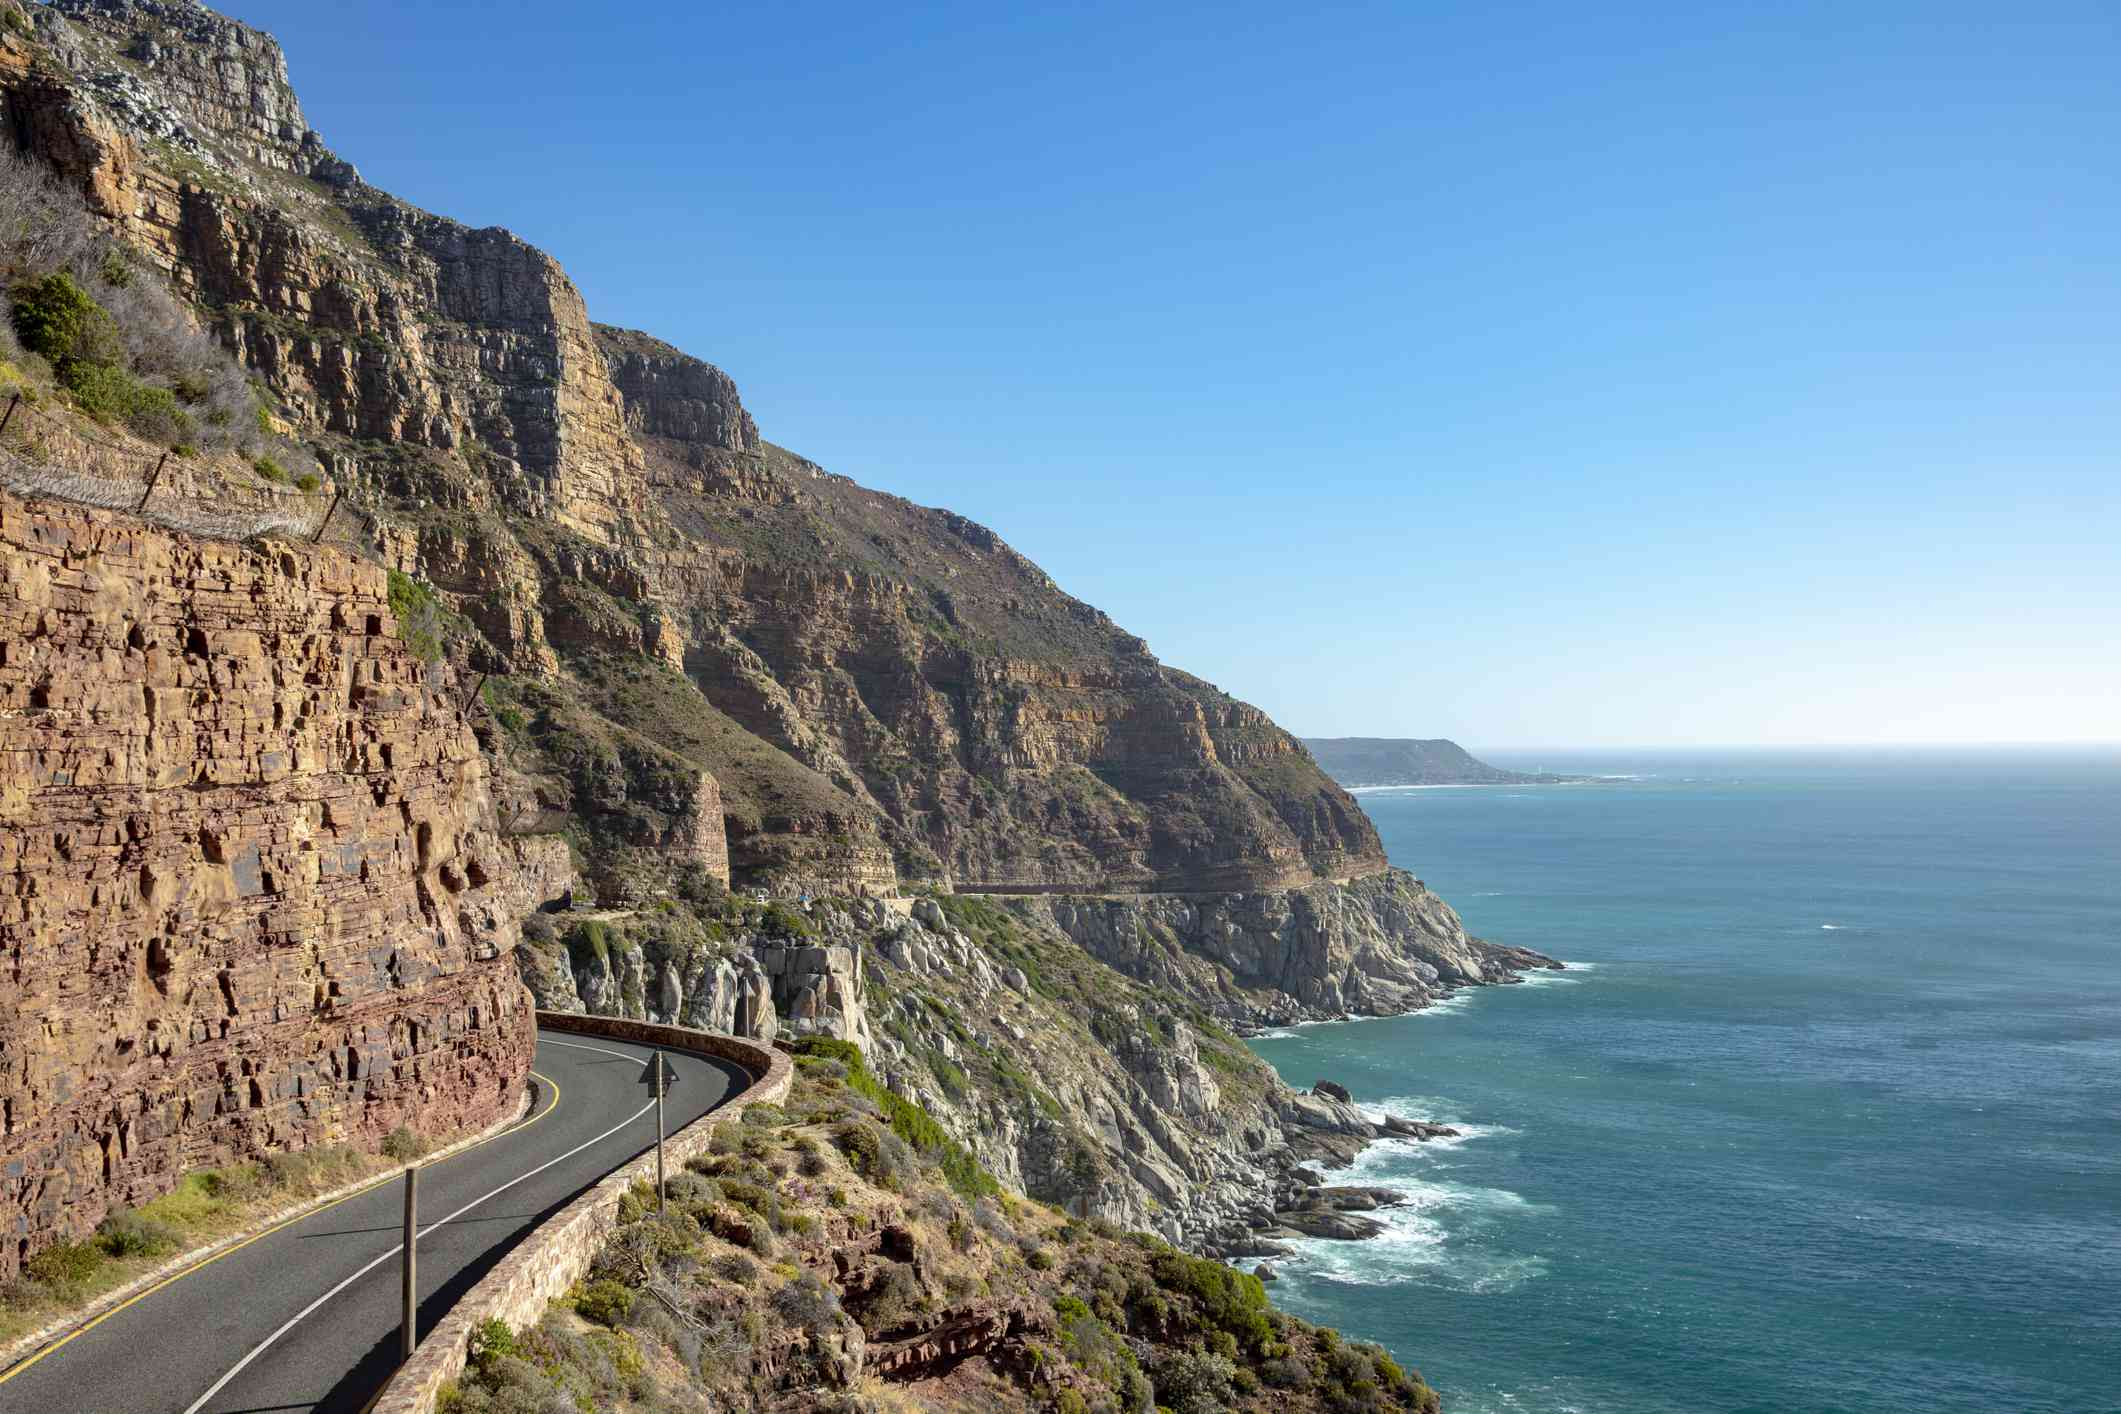 Chapman's Peak Drive in Cape Town, South Africa